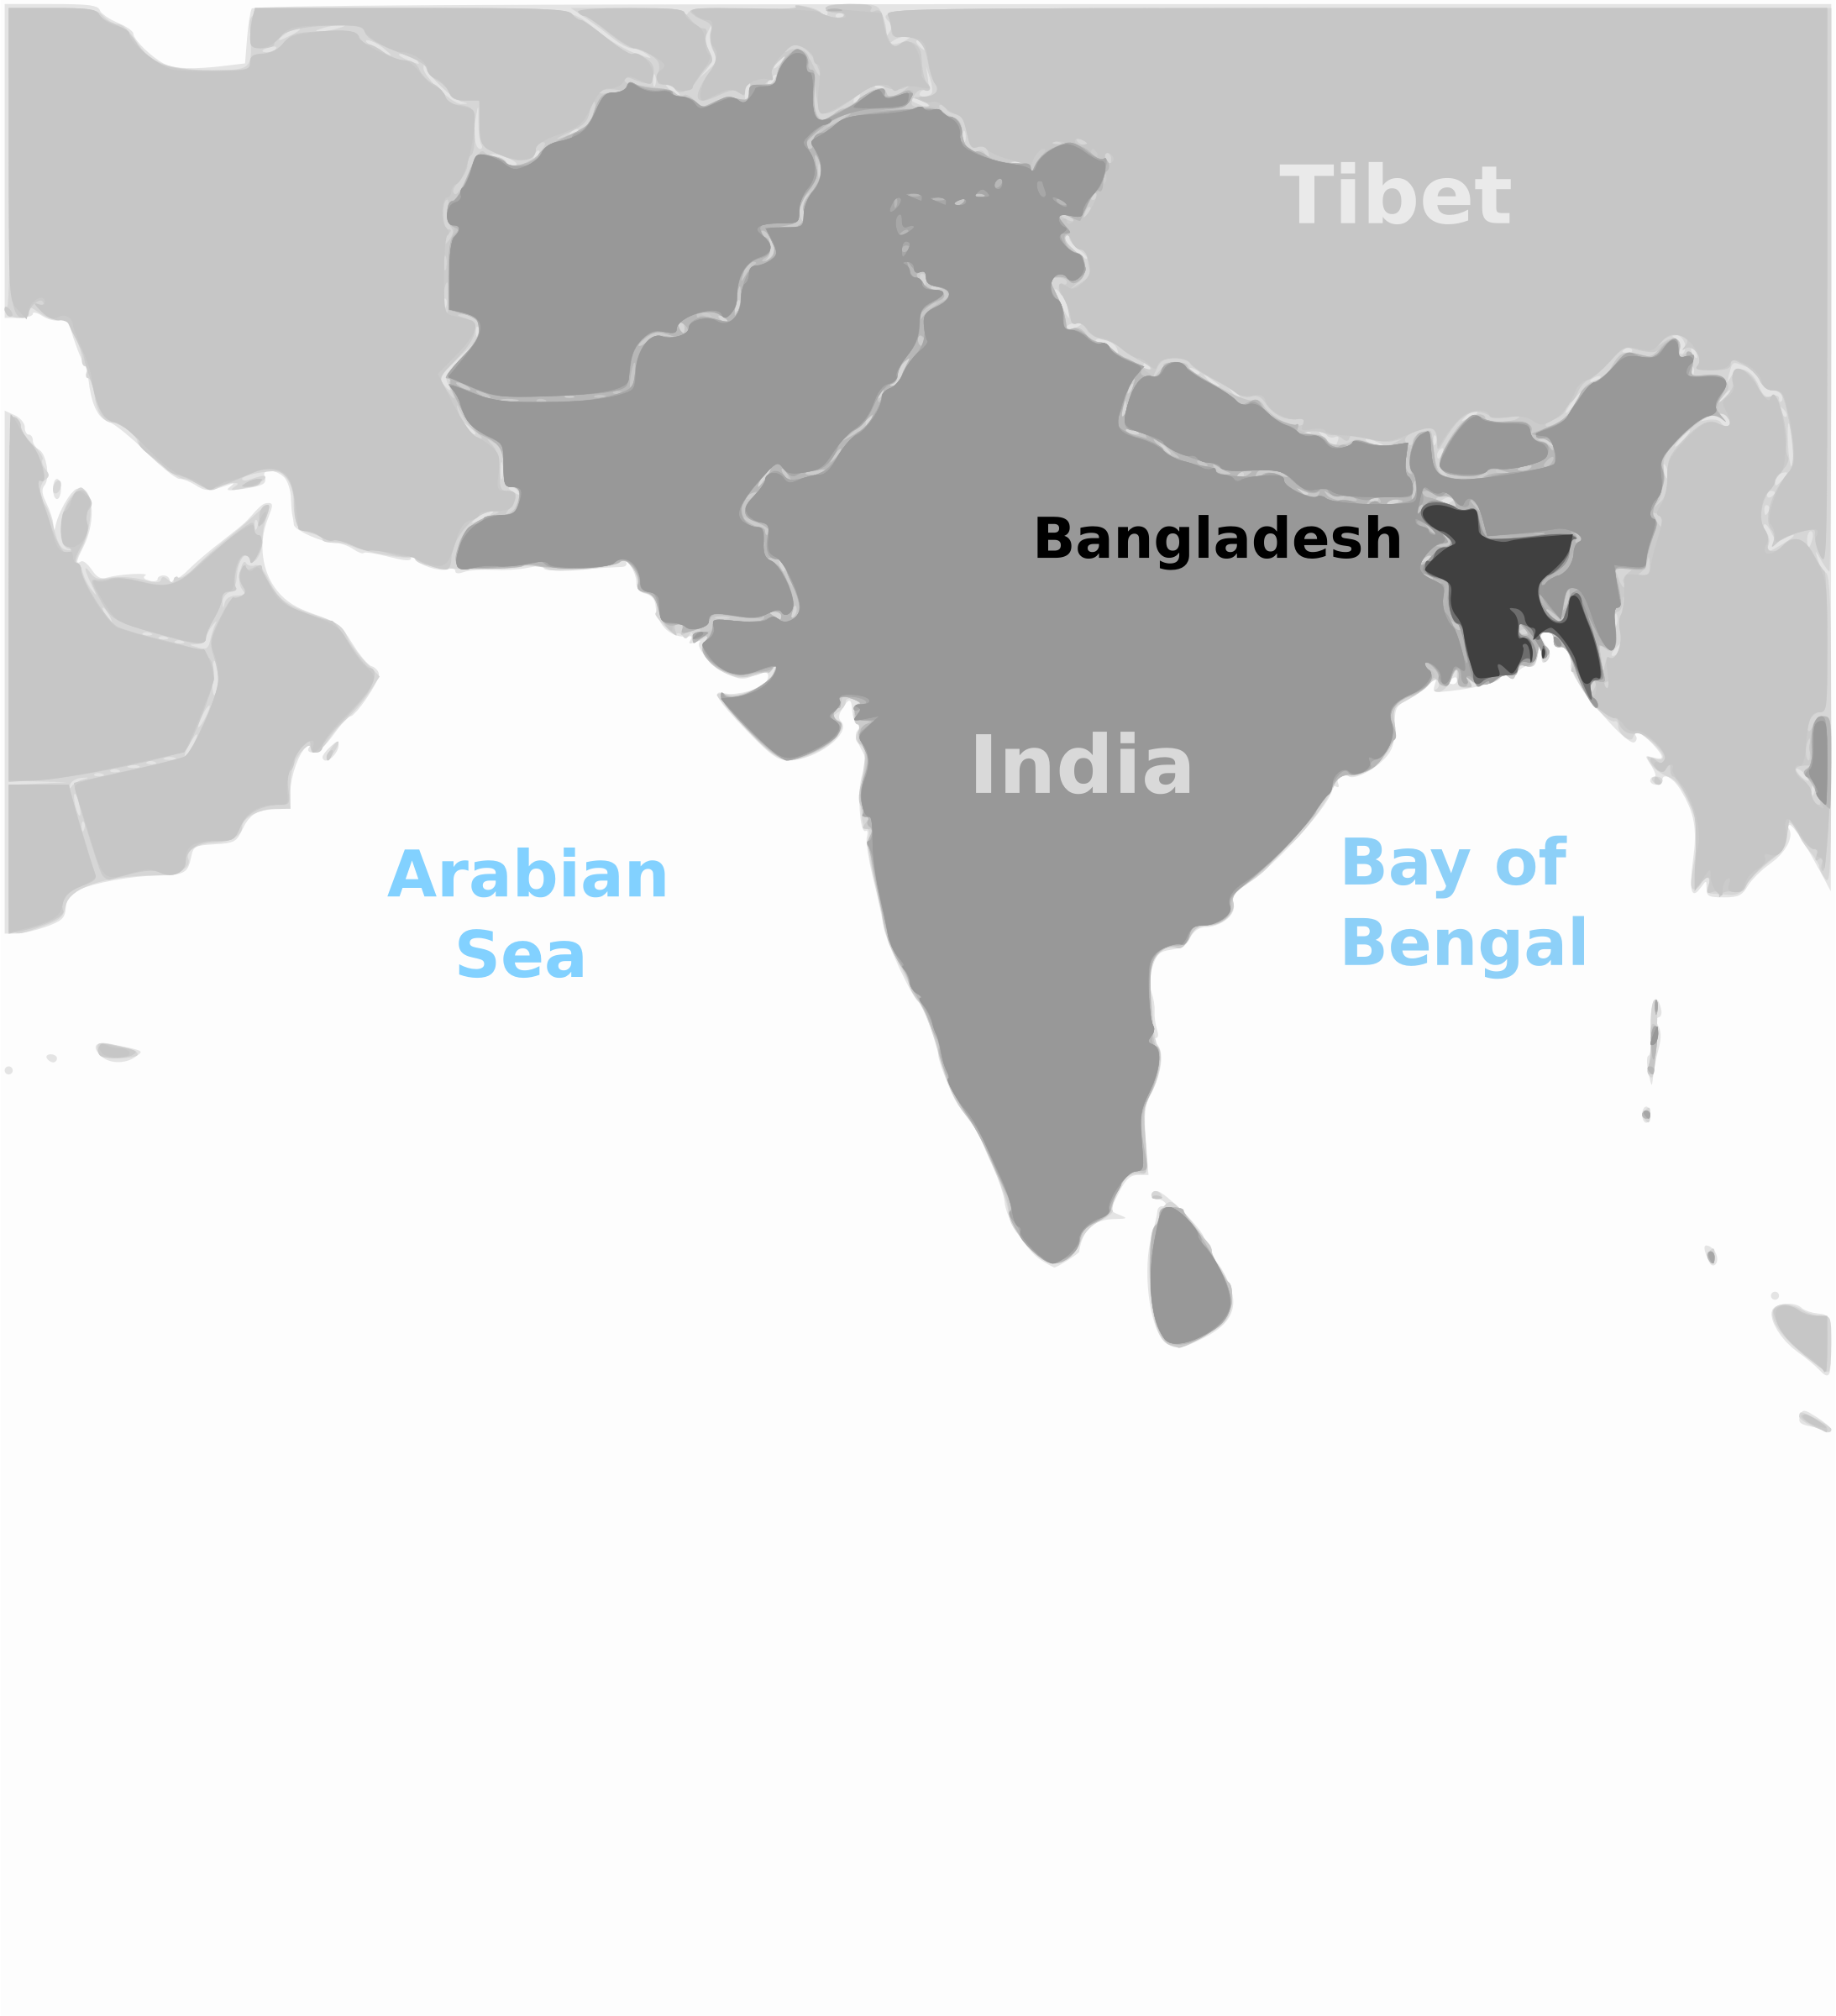 Bangladesh location label by wpclipart